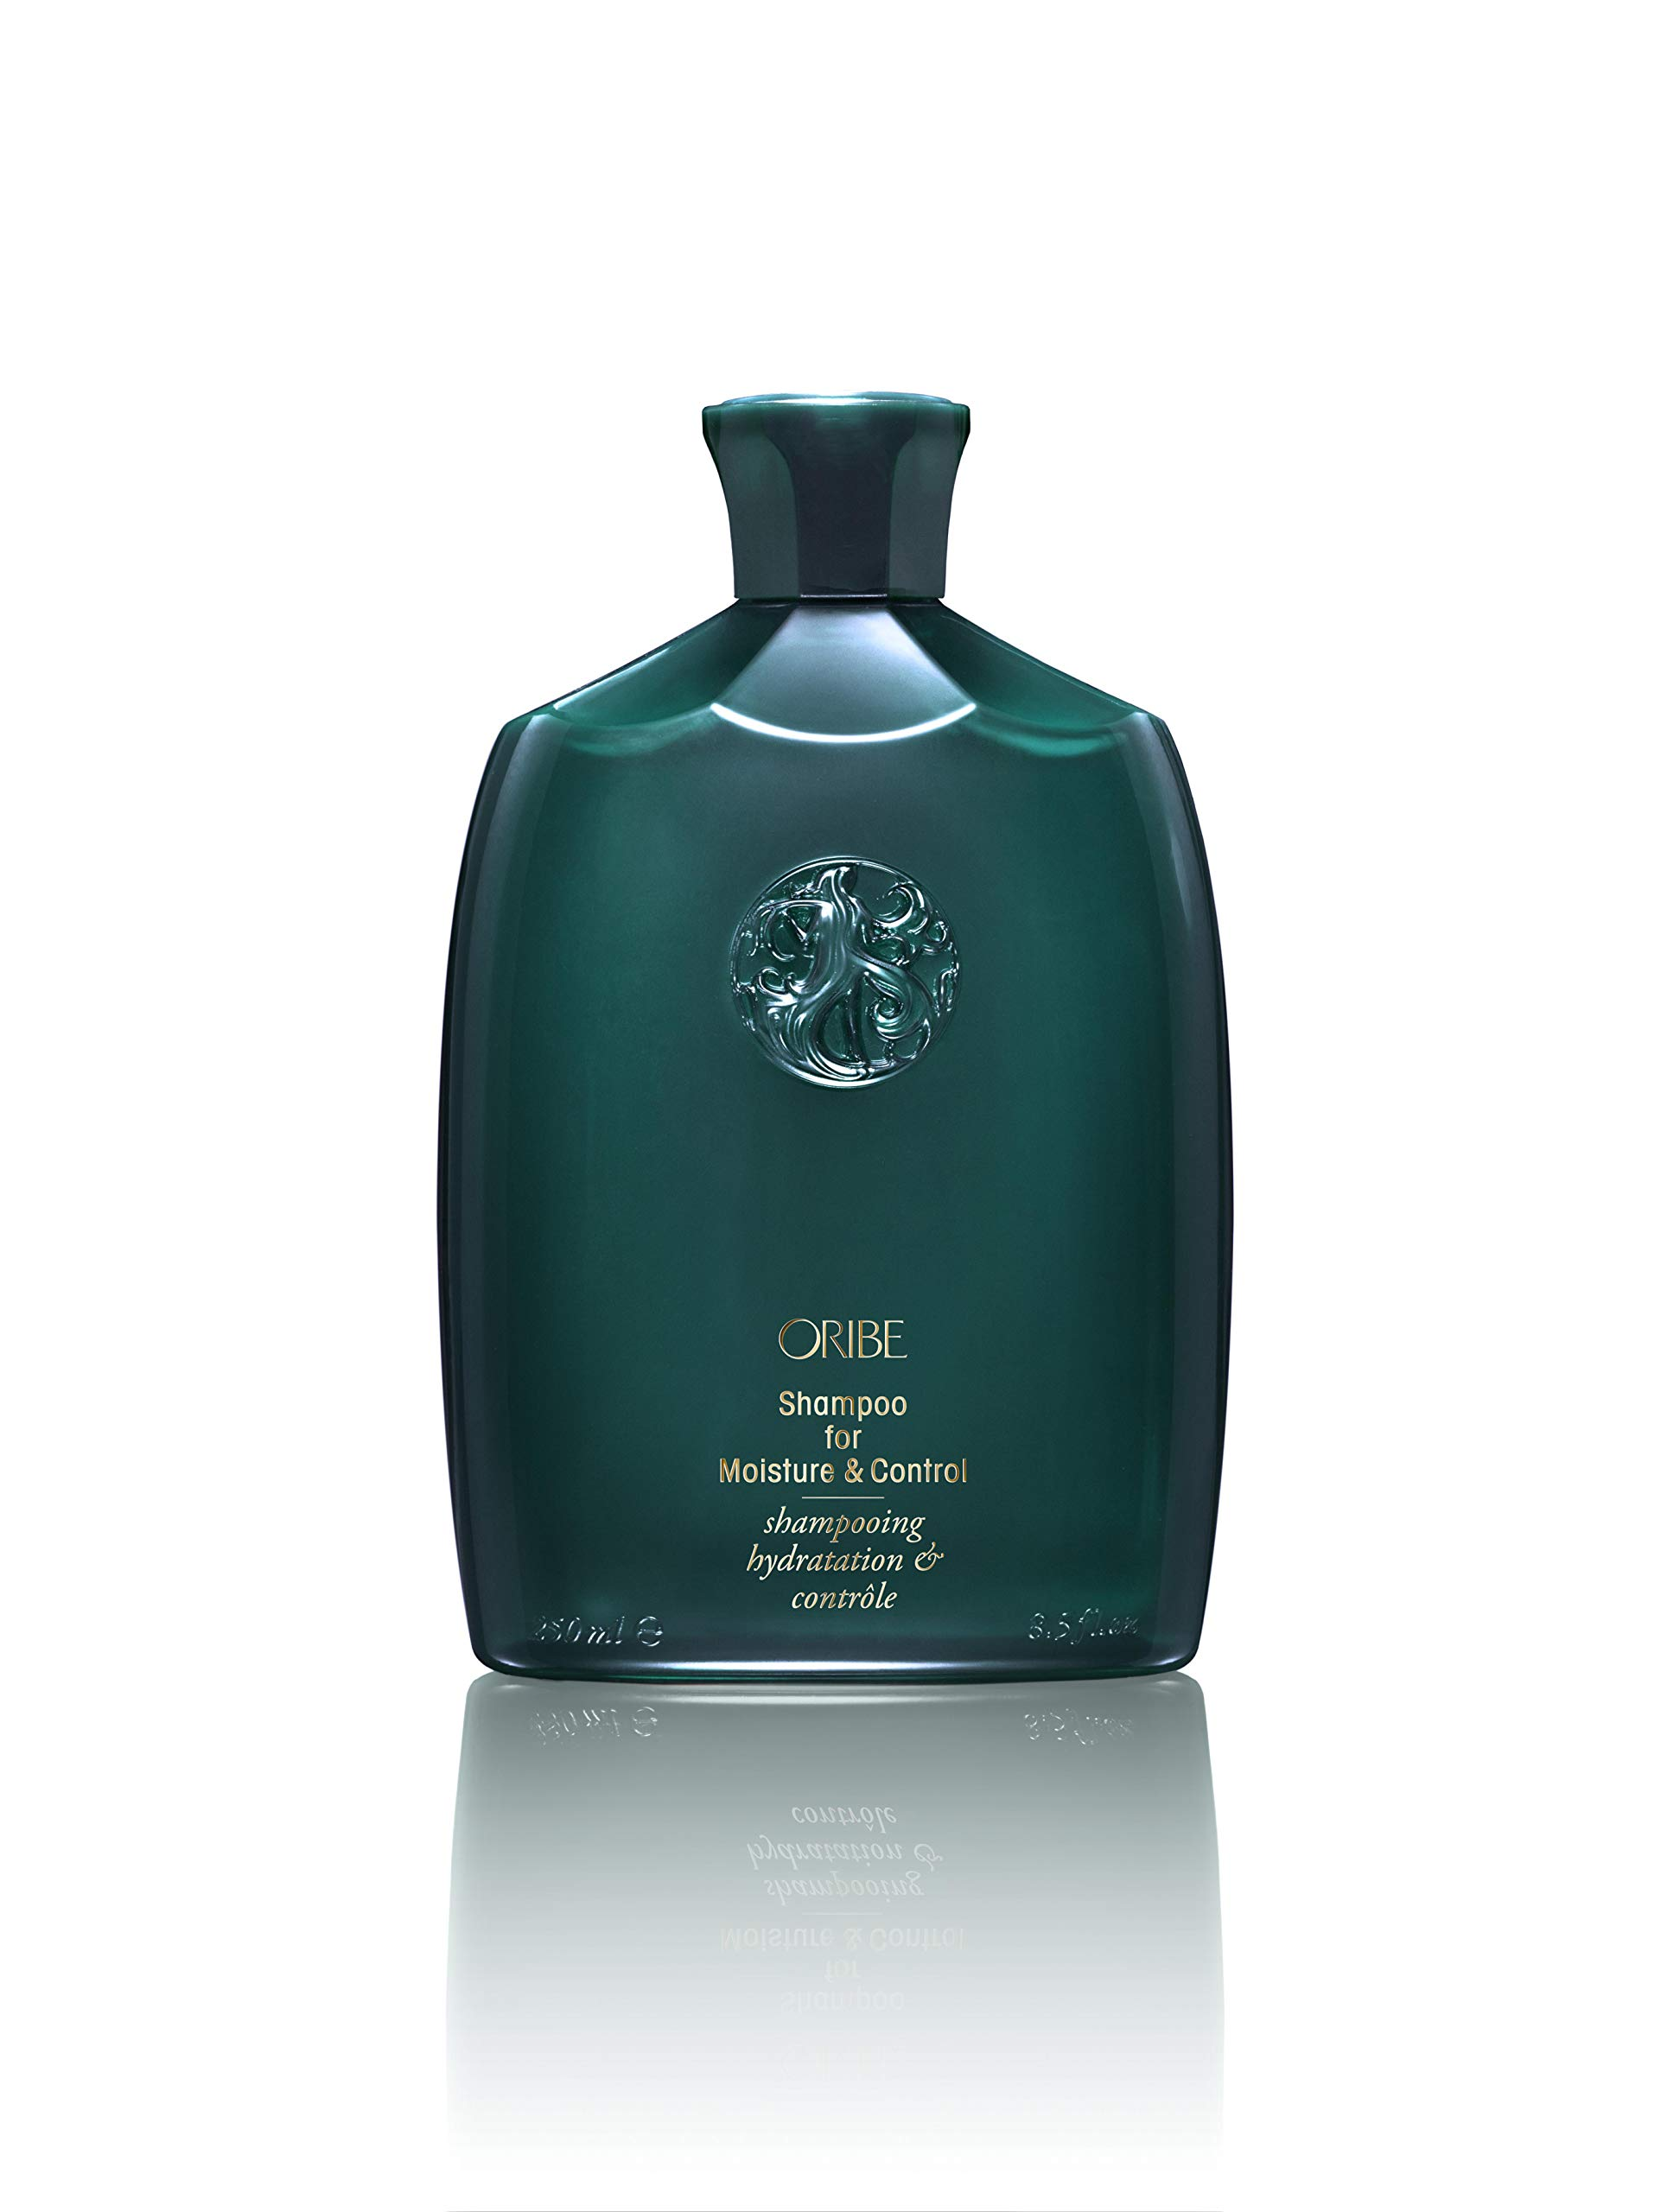 ORIBE Shampoo for Moisture and Control, 8.5 Fl Oz by ORIBE